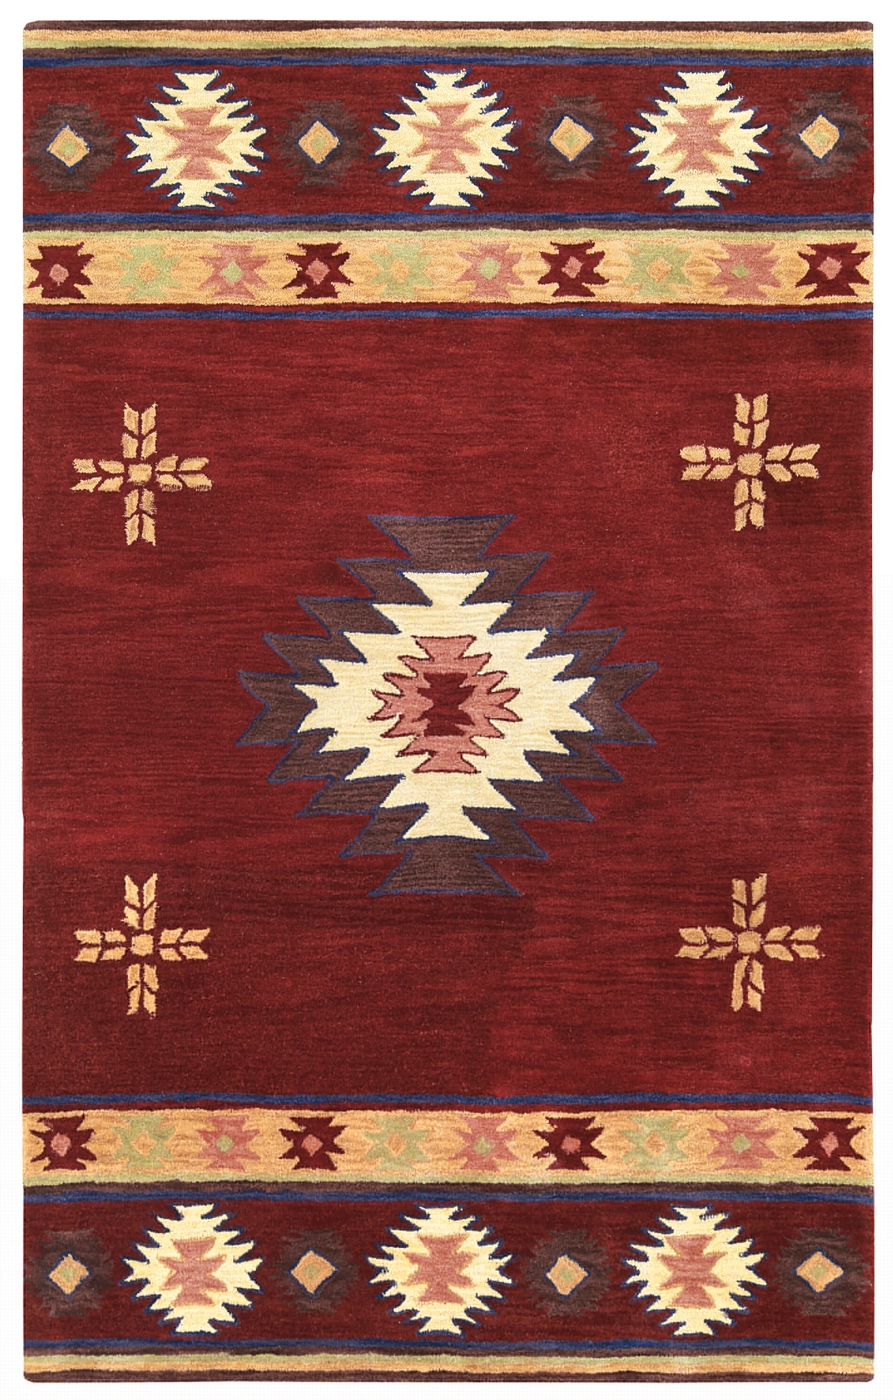 southwest indian pattern wool area rug in red tan sage navy 8 39 x 10 39. Black Bedroom Furniture Sets. Home Design Ideas